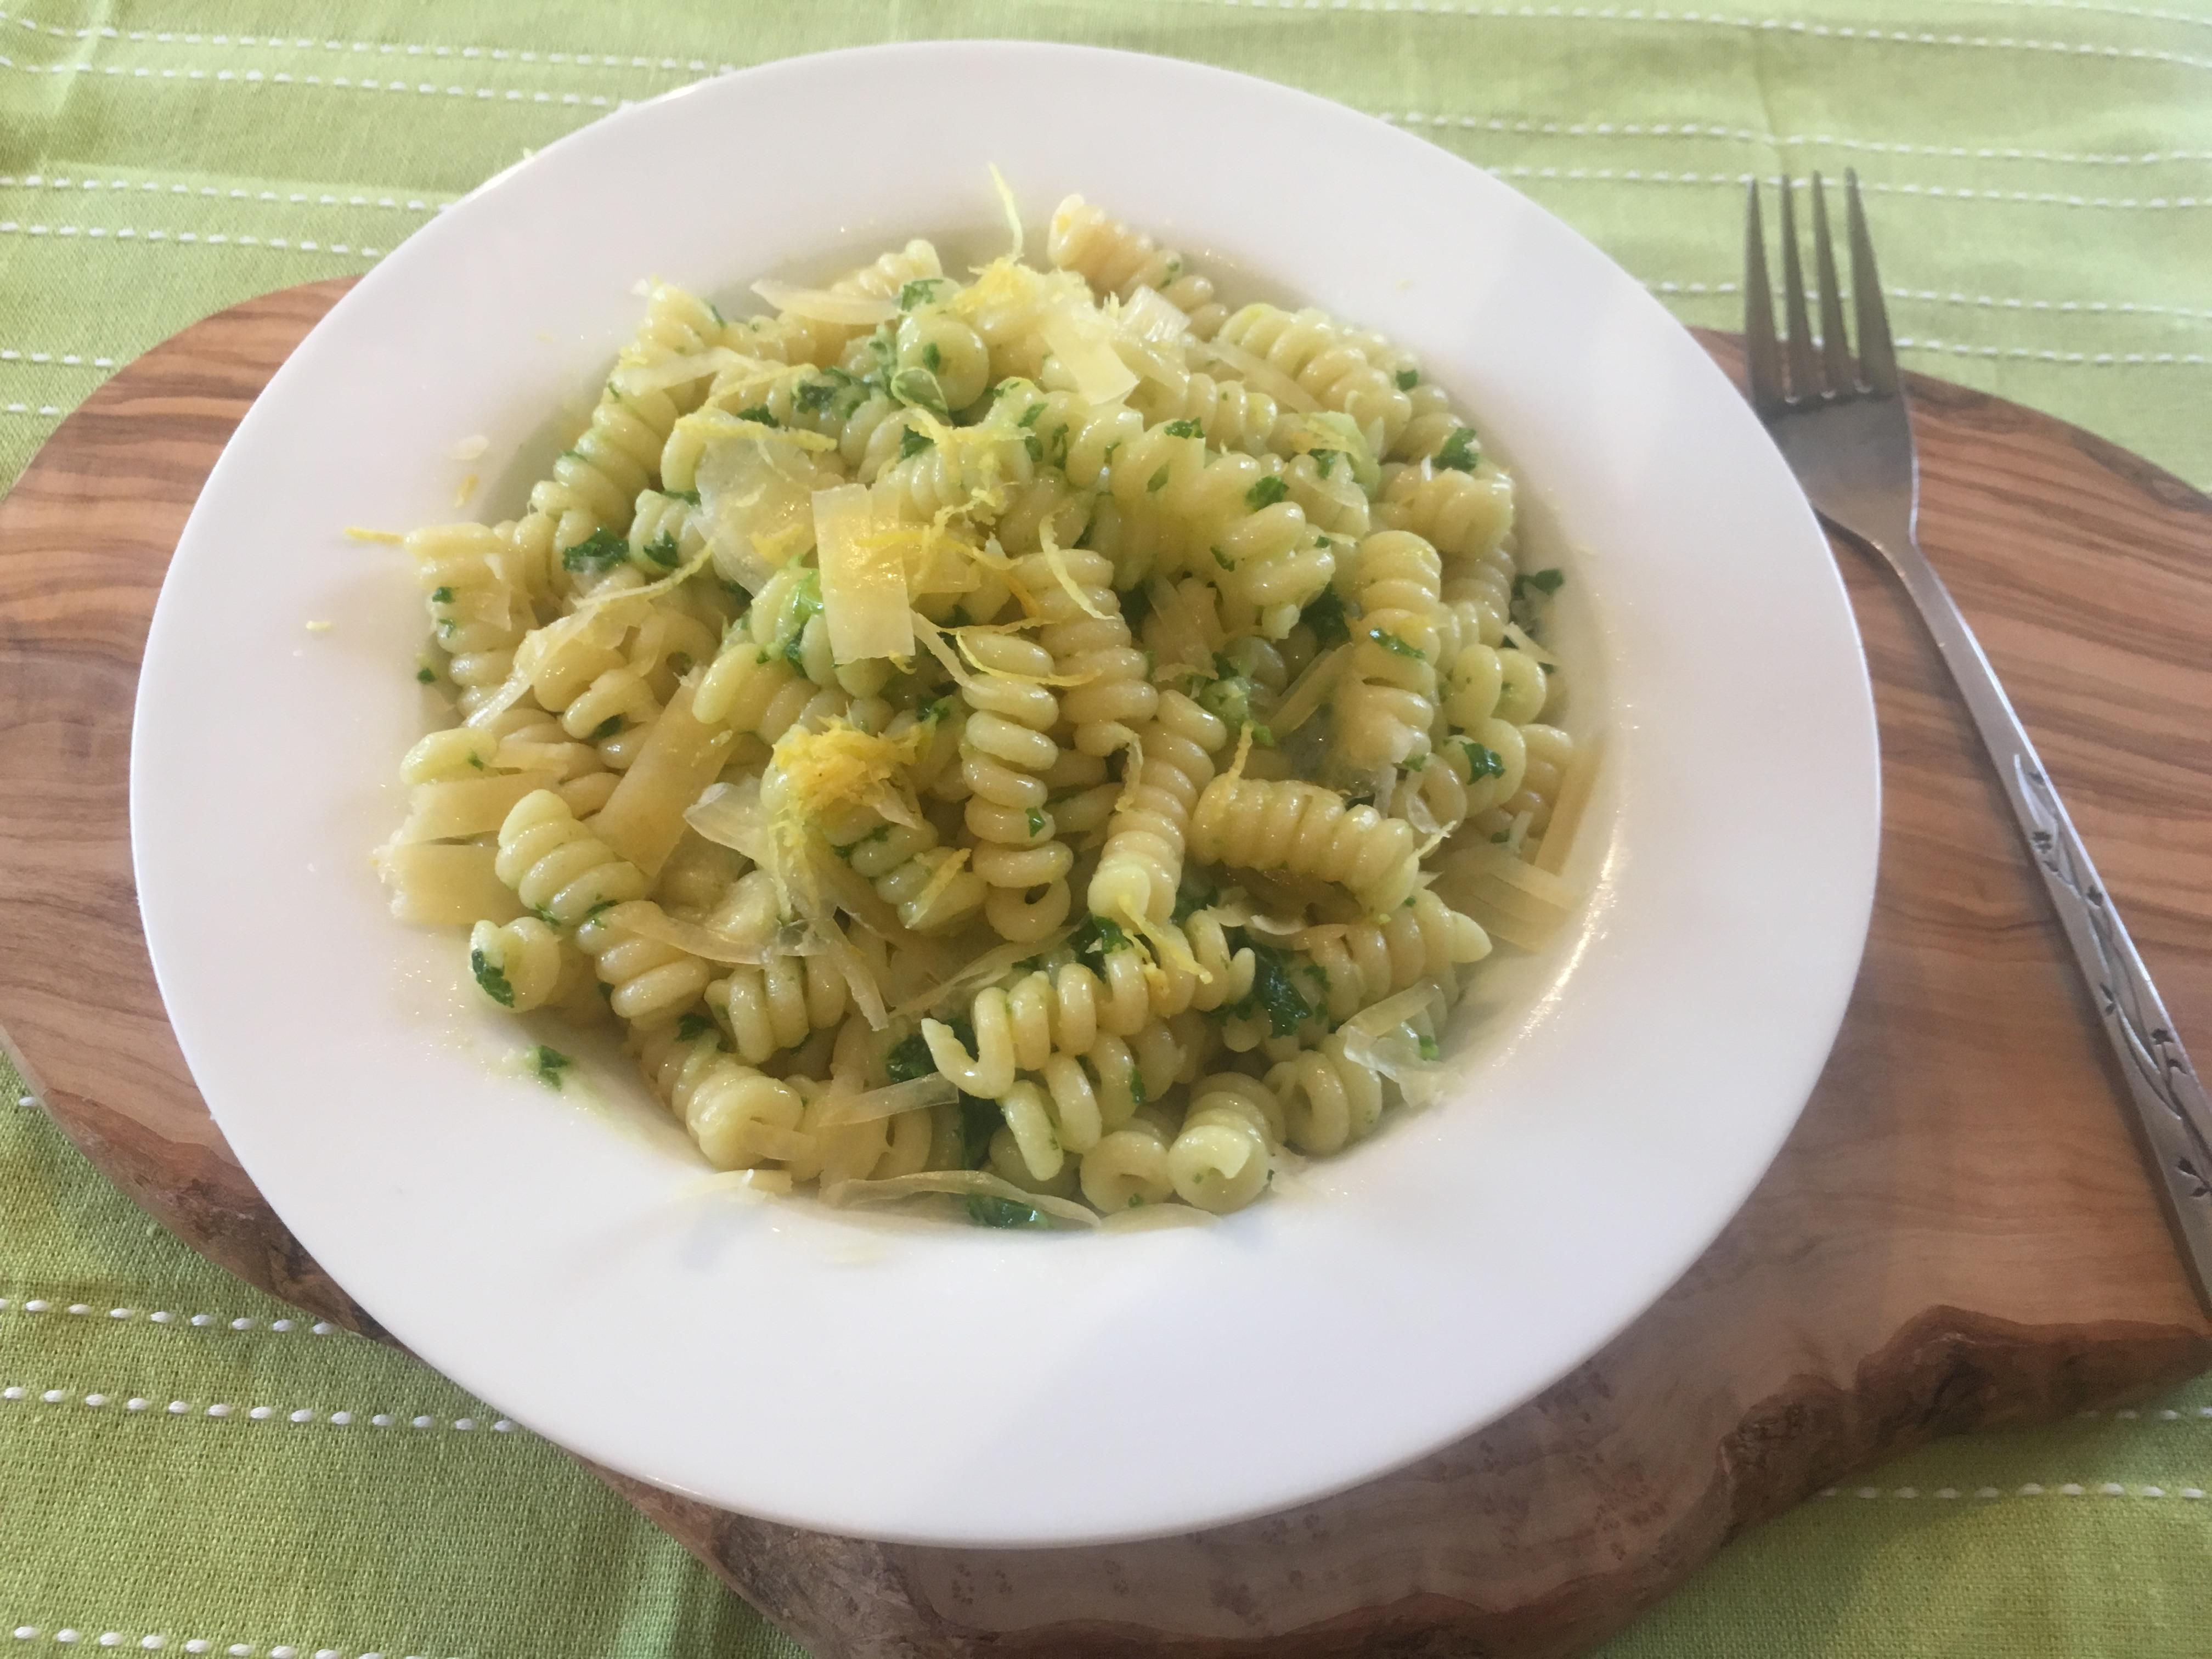 CURLY KALE PESTO PASTA